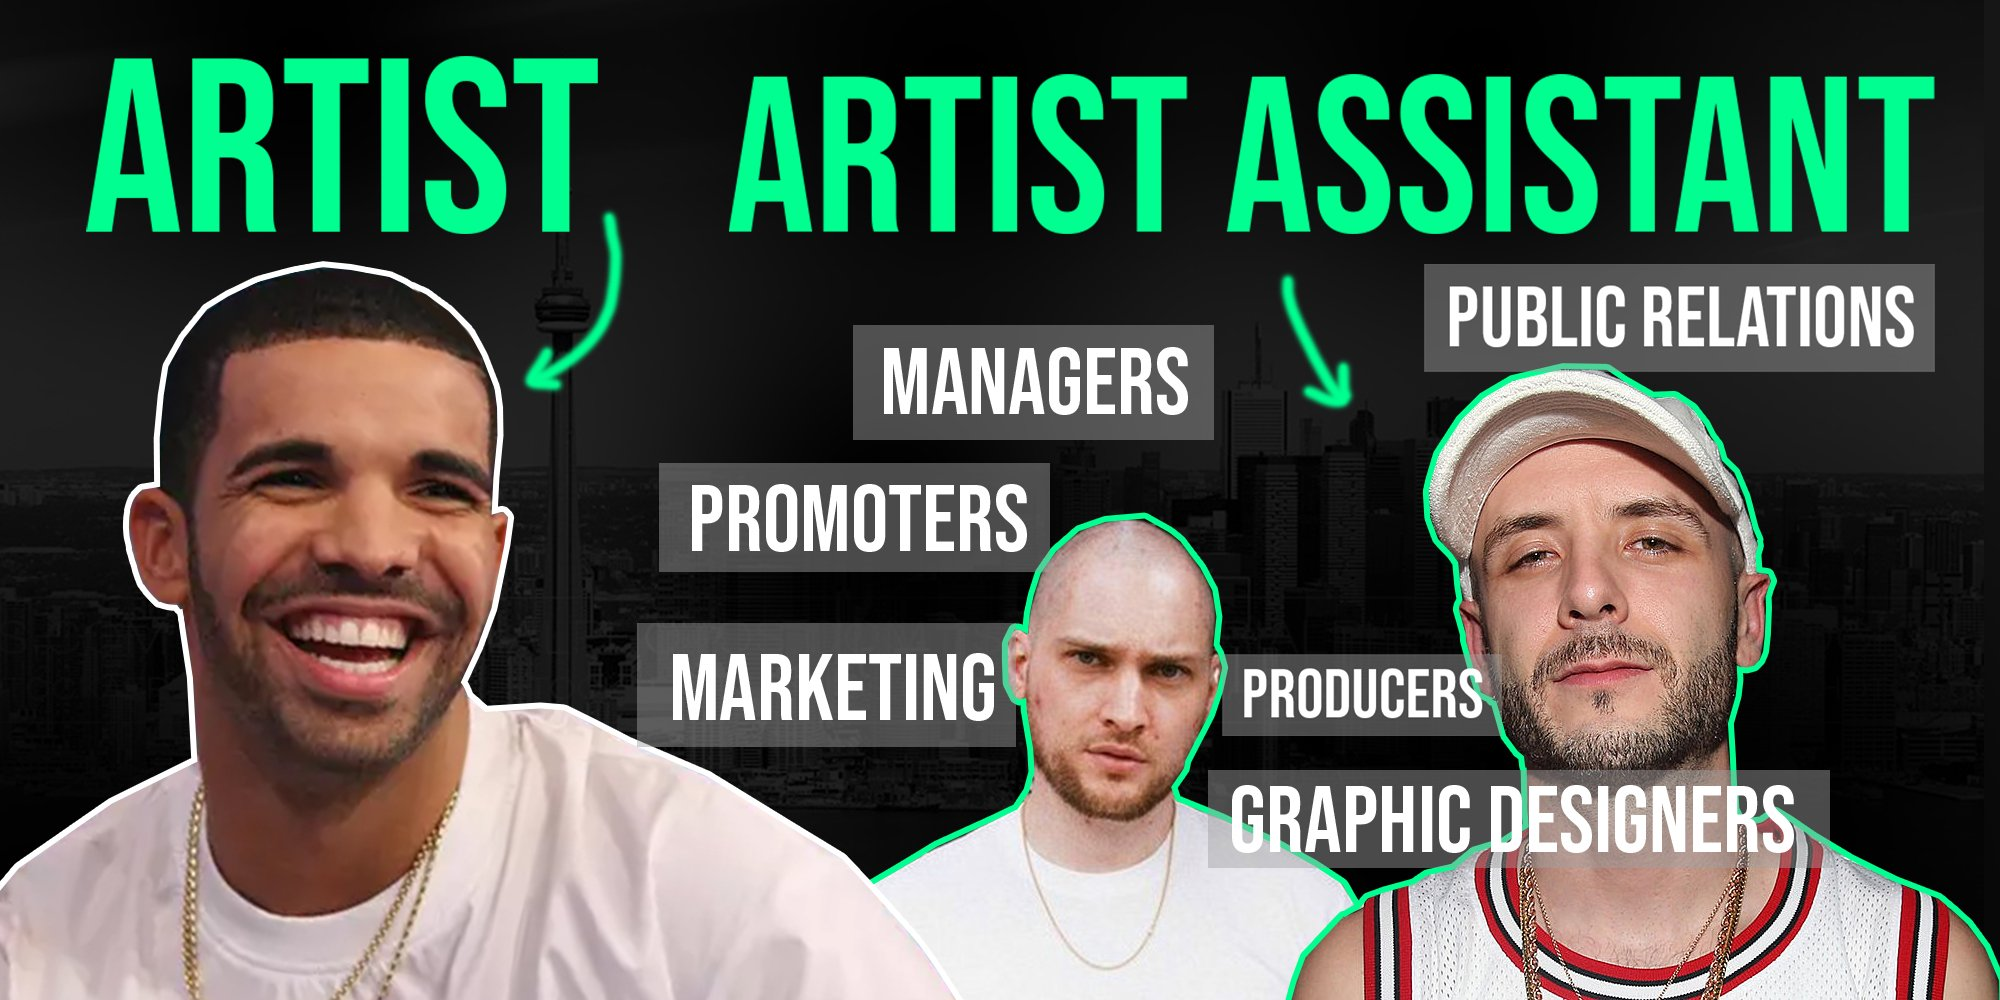 Top artists have assistants. You should too!